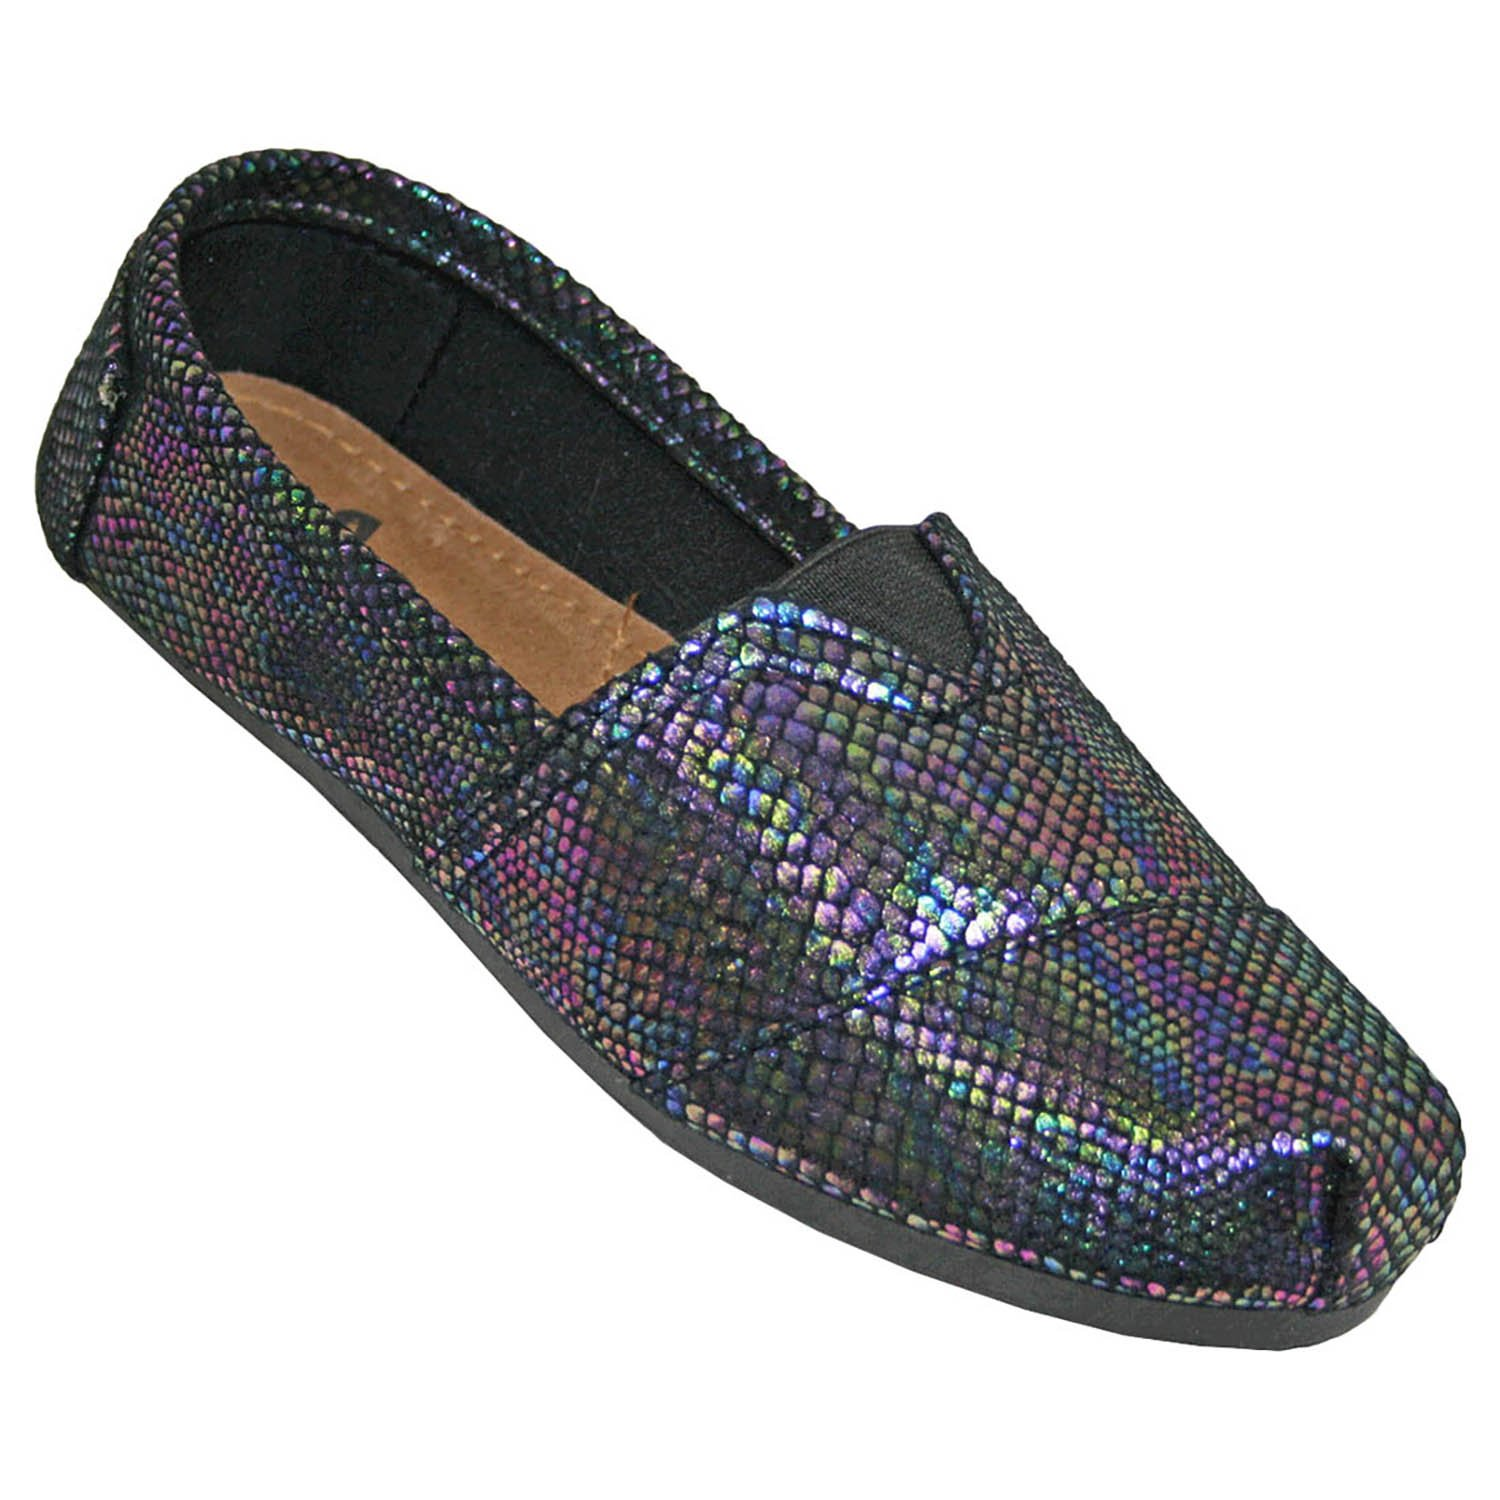 DAWGS Kaymann Women's Exotic Loafer SNAKE PRINT IN BLUE IRIDESCENT PRINT 5 M US